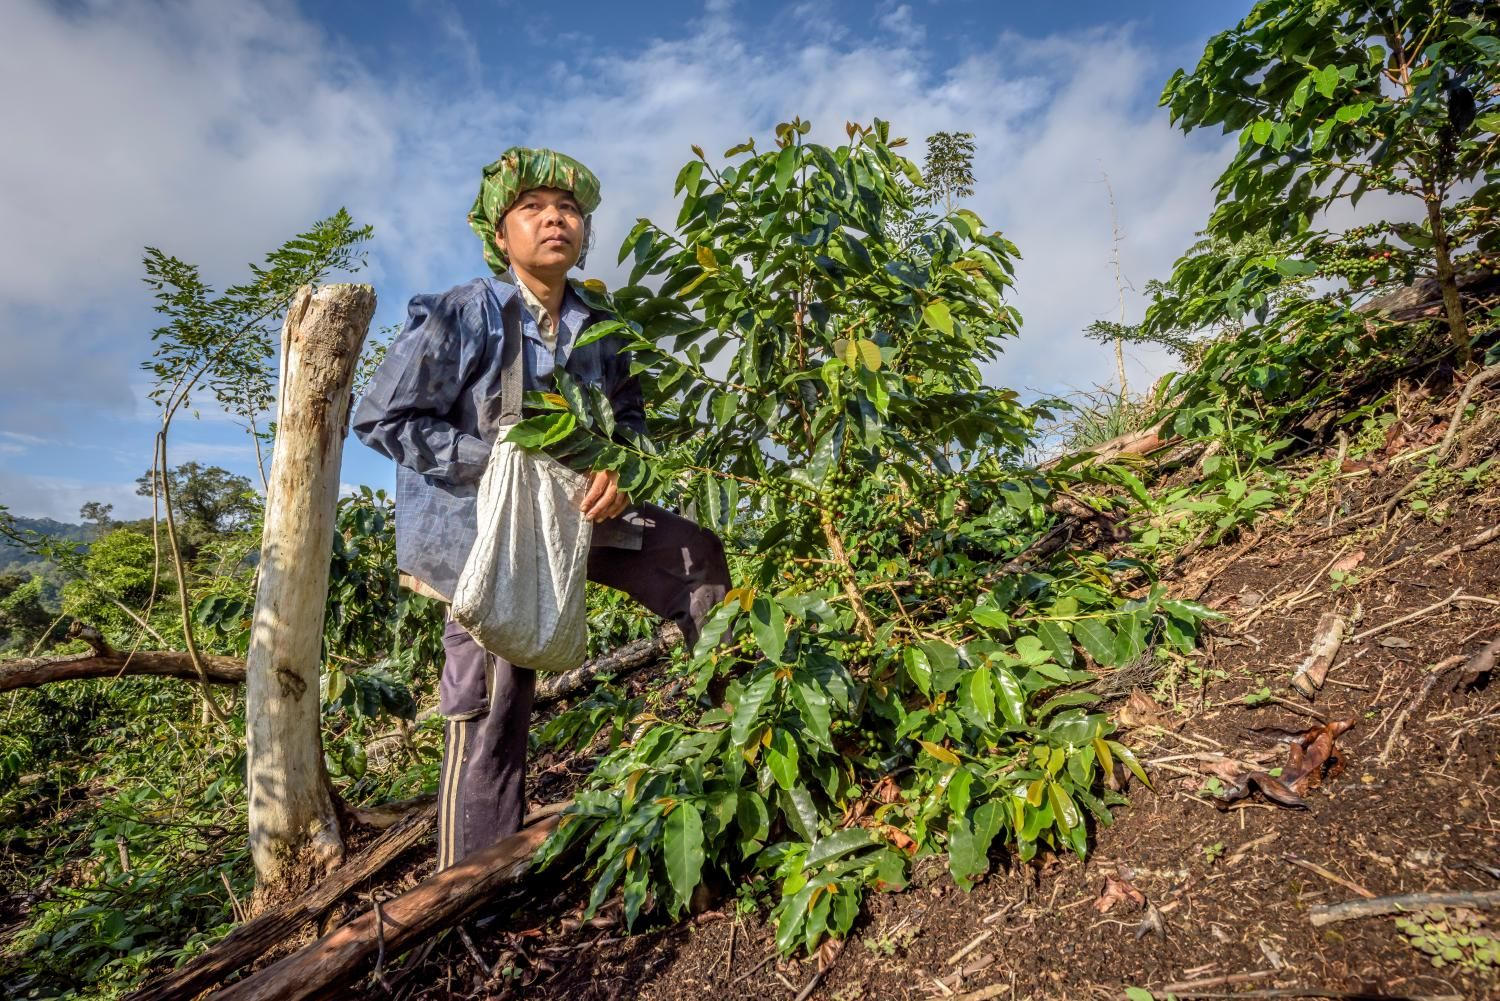 Future demand and climate change could make coffee a driver of deforestation